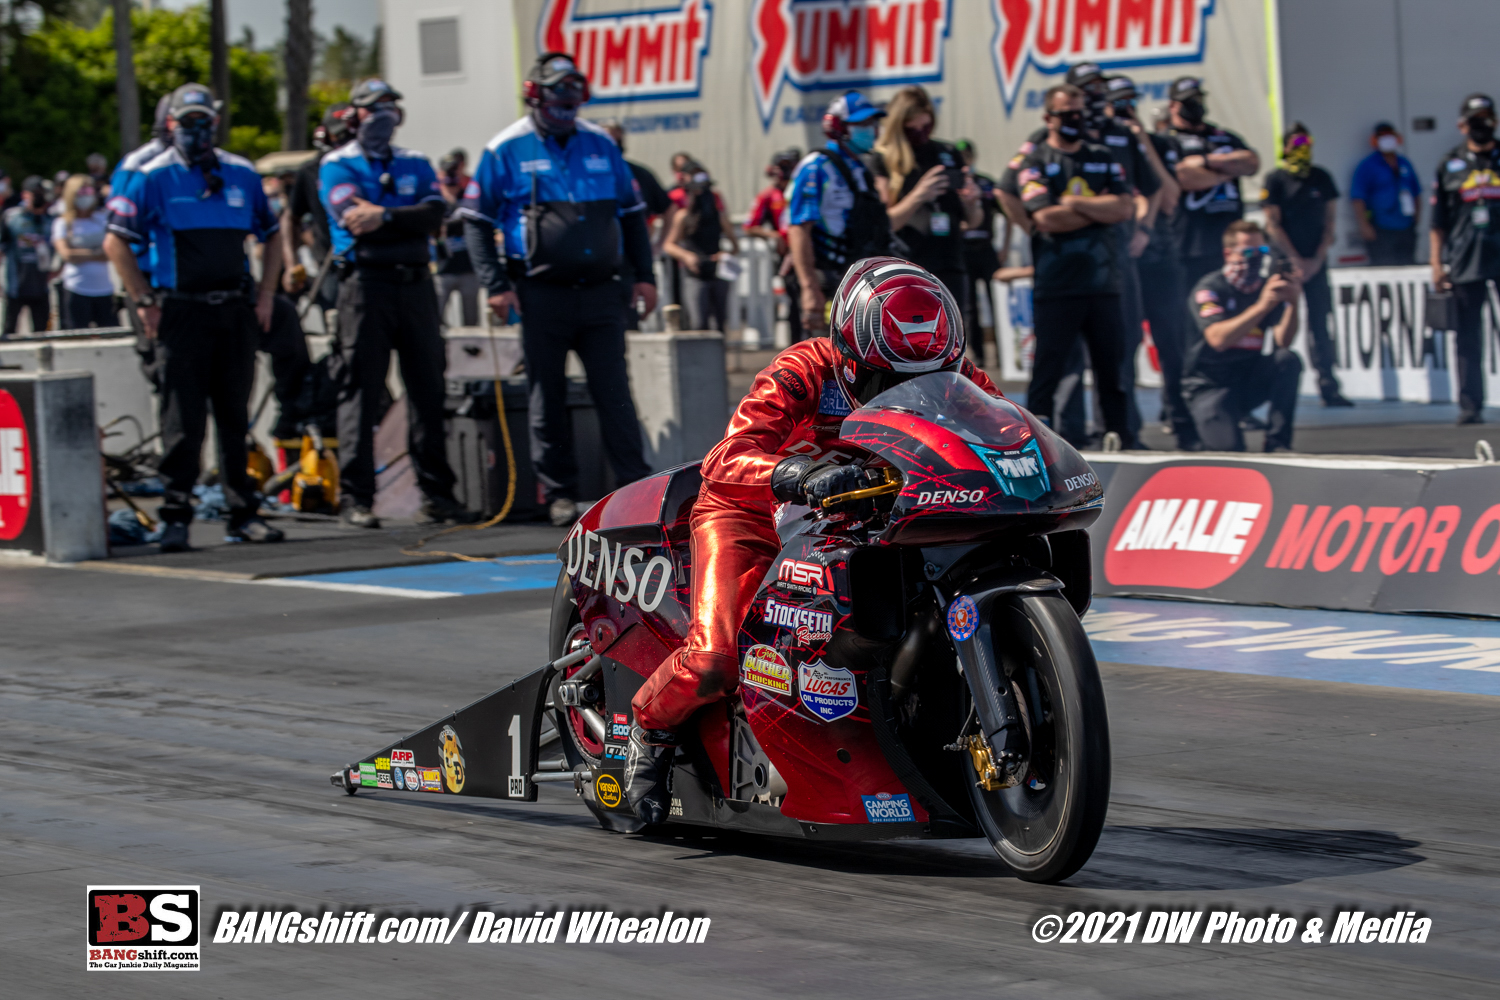 2021 Amalie Oil Gatornationals Action Photo Coverage: Mean Hunks Of 'Cicle In Pro Stock Bike and Nitro Harley!